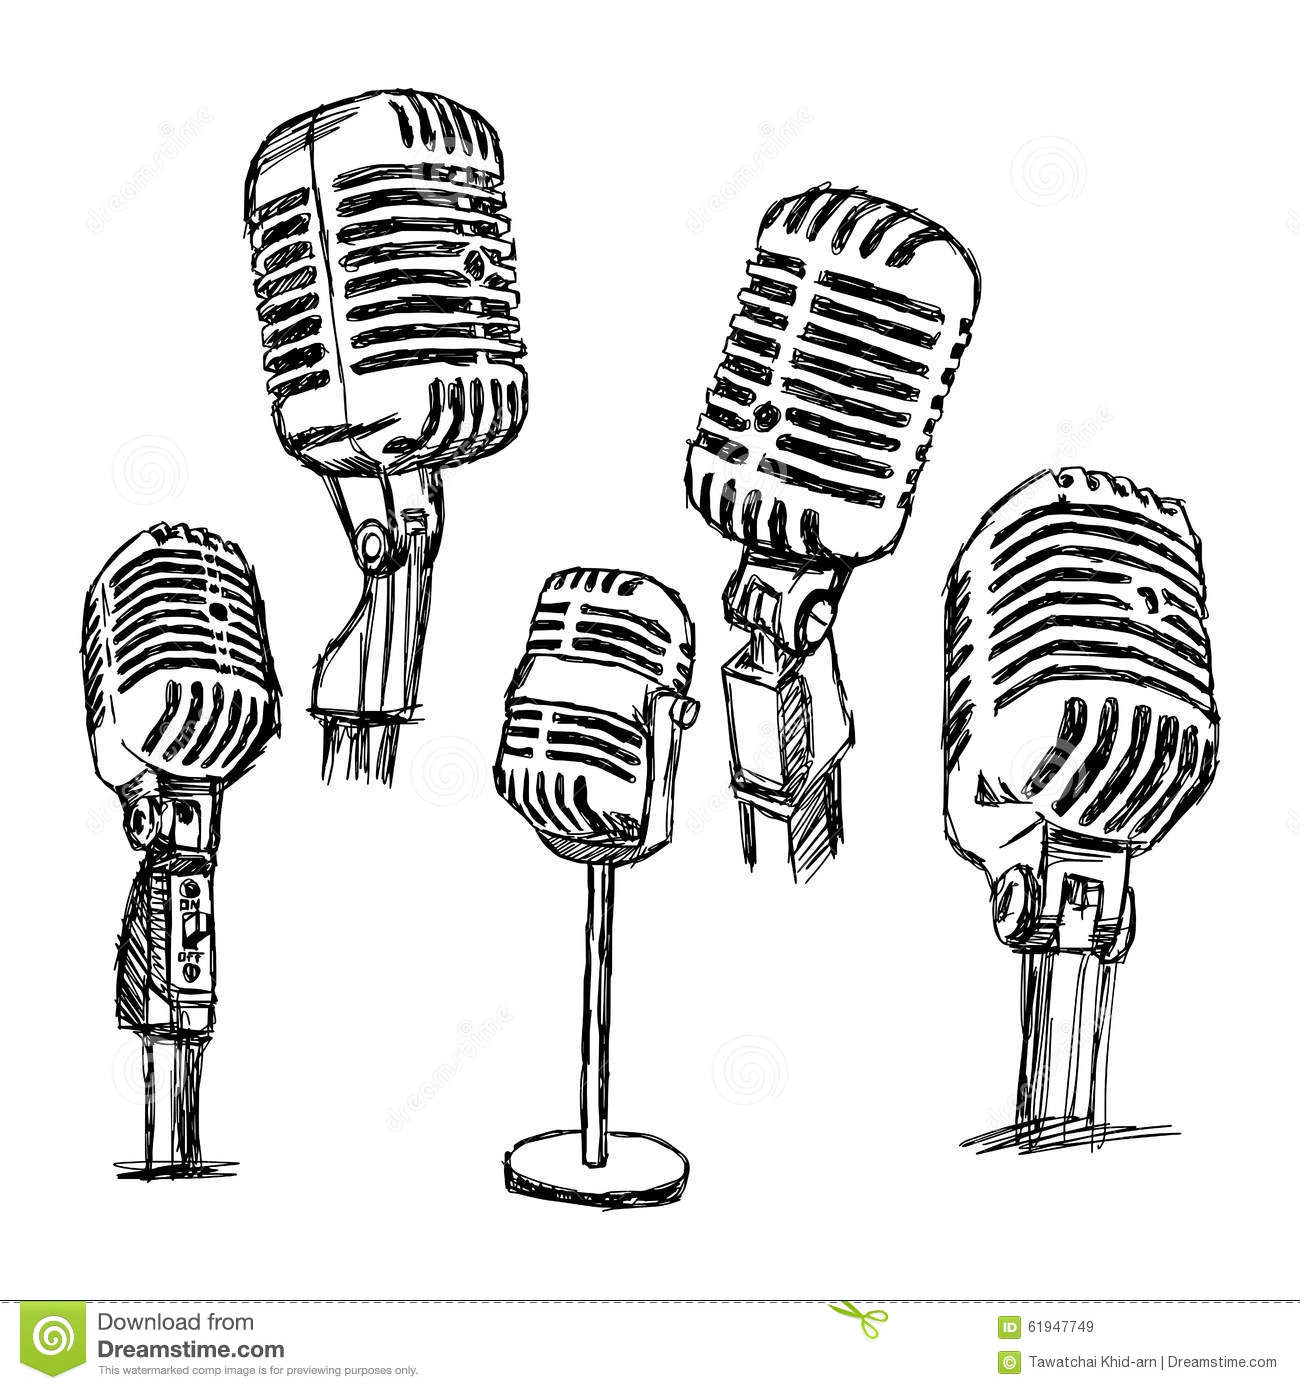 Illustration Vector Doodle Hand Drawn Retro Microphone Set